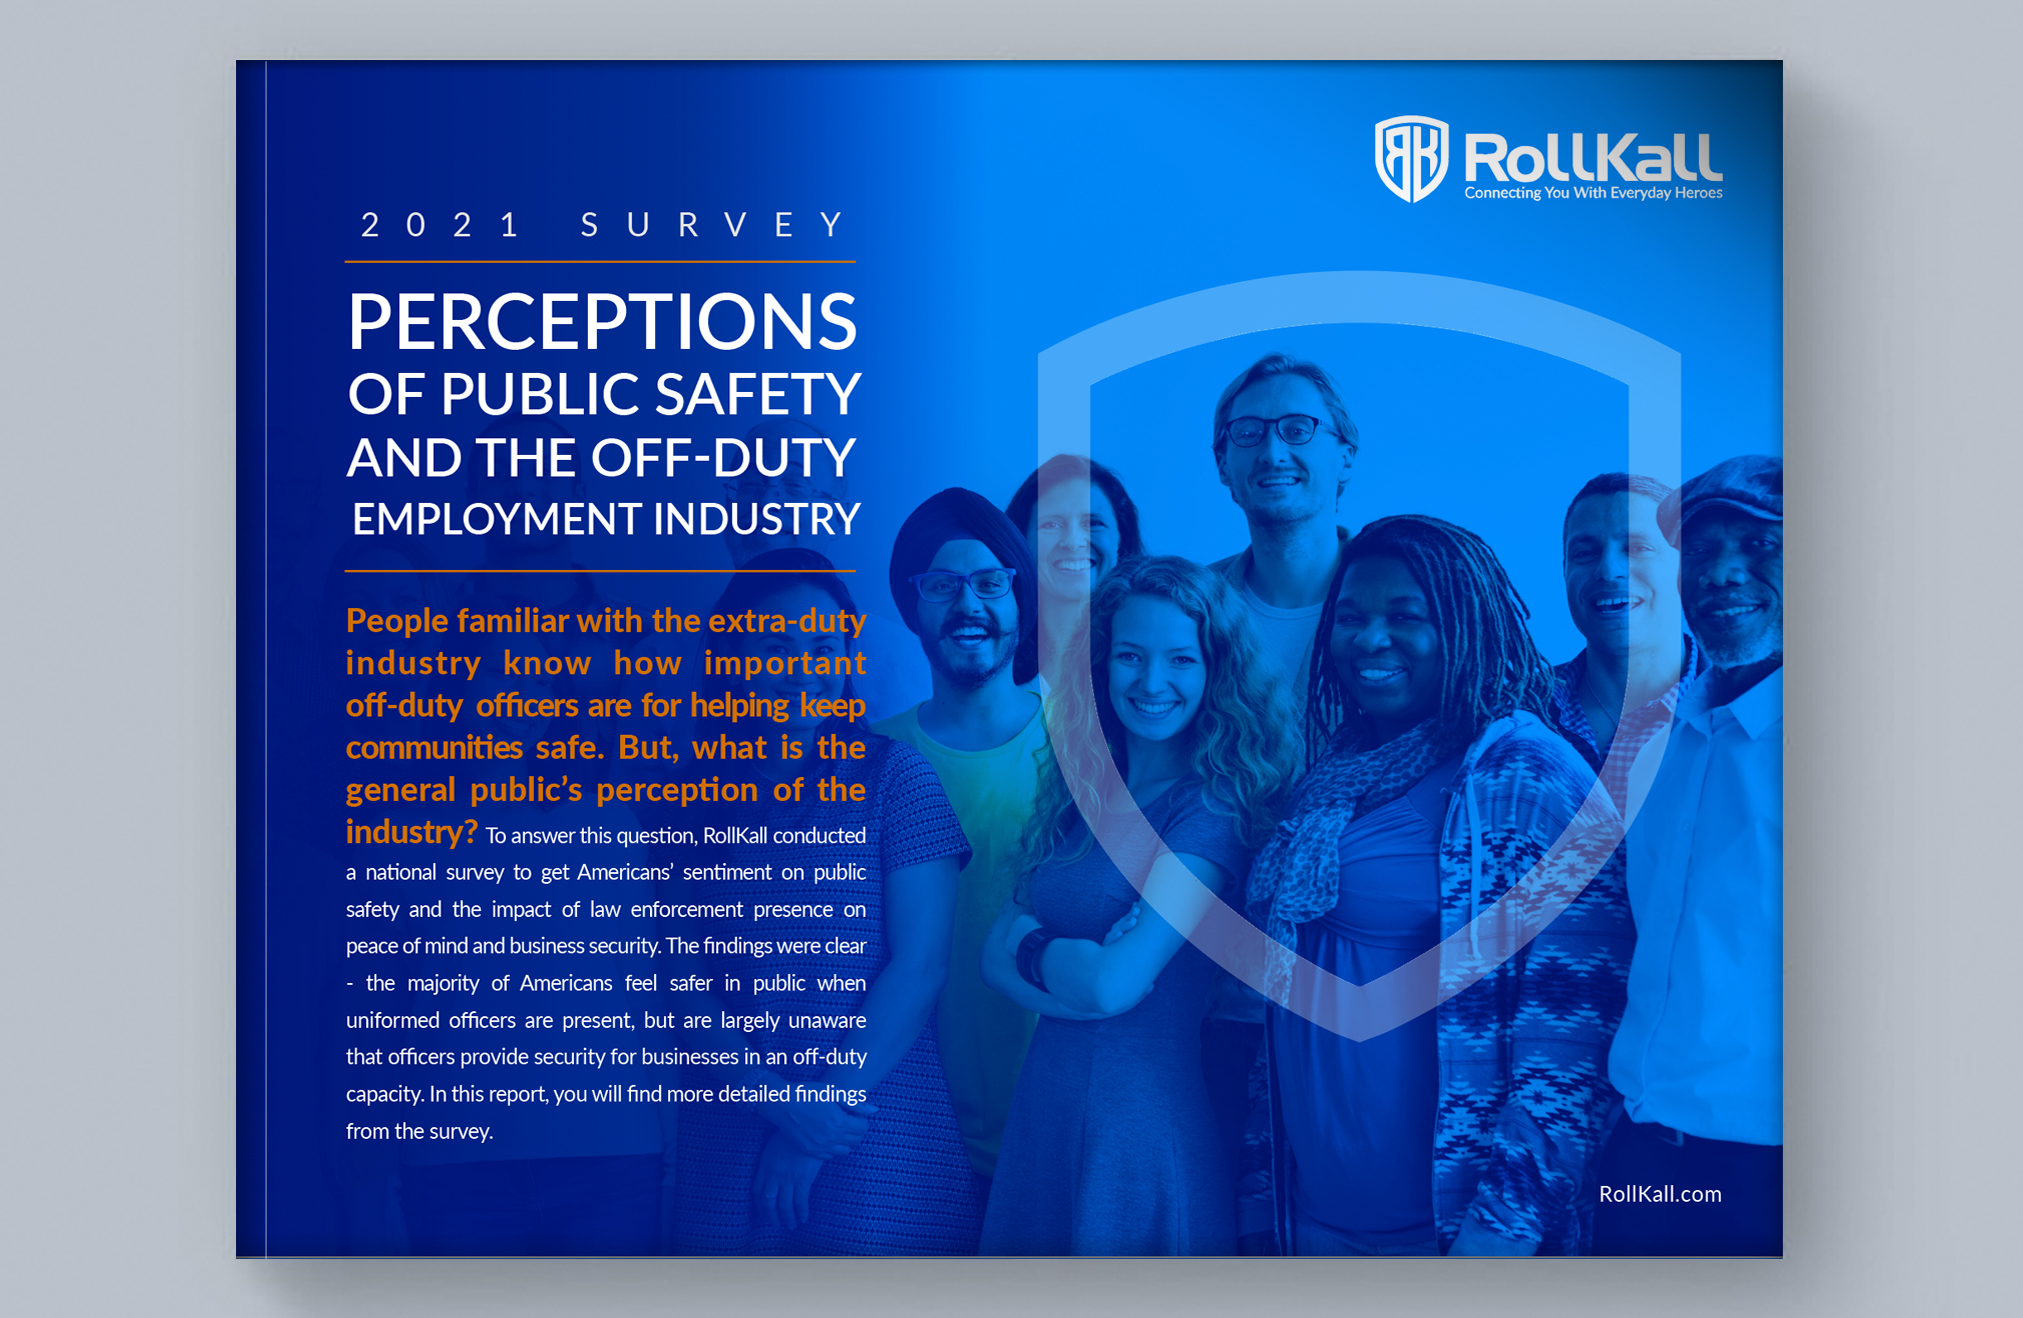 2021 Survey -Perceptions of Public Safety and The Off-Duty Employment Industry